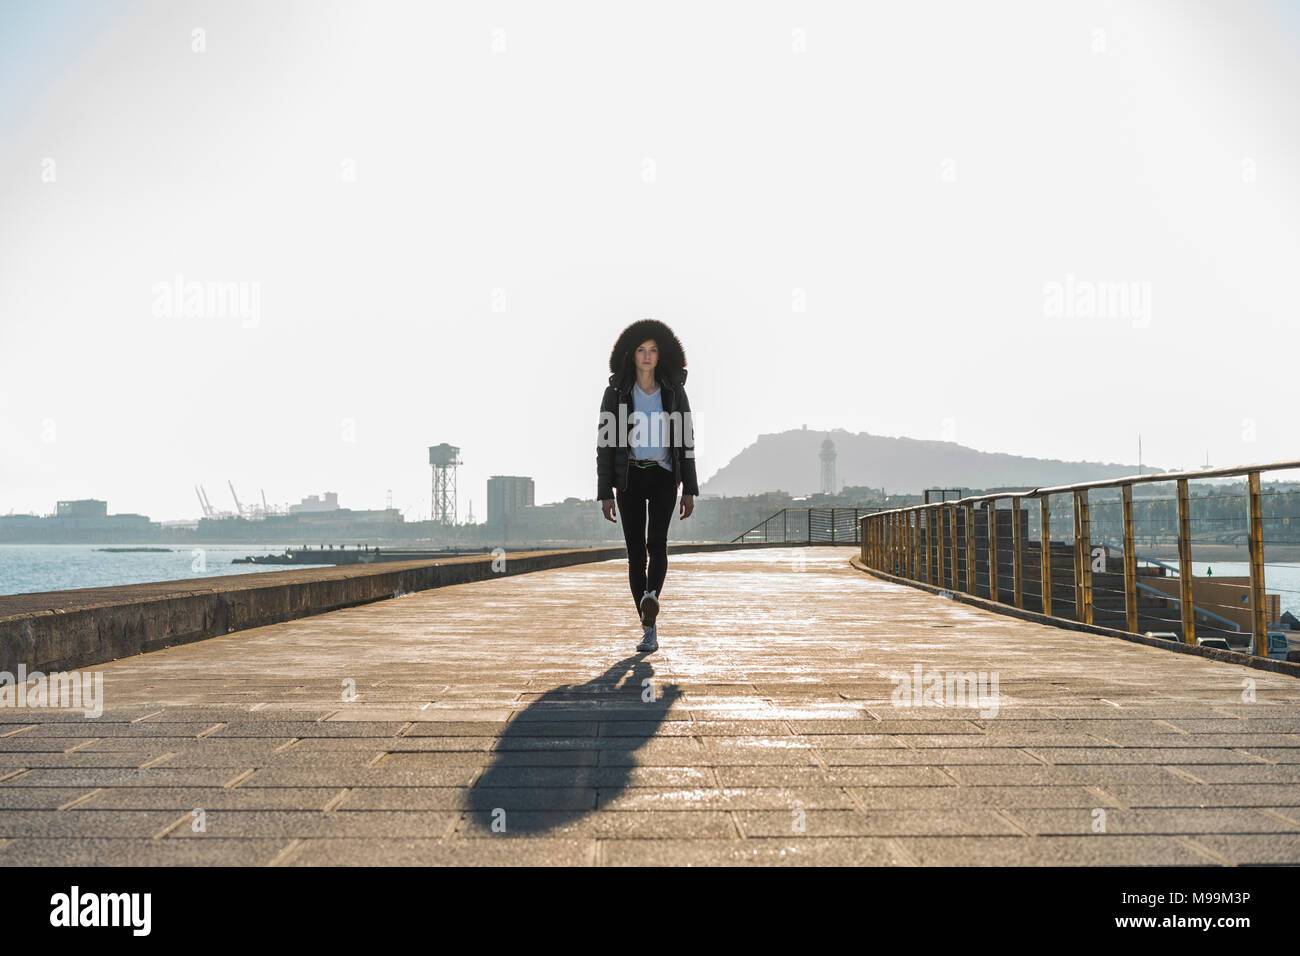 Spain, Barcelona, woman wearing hooded jacket walking on promenade - Stock Image